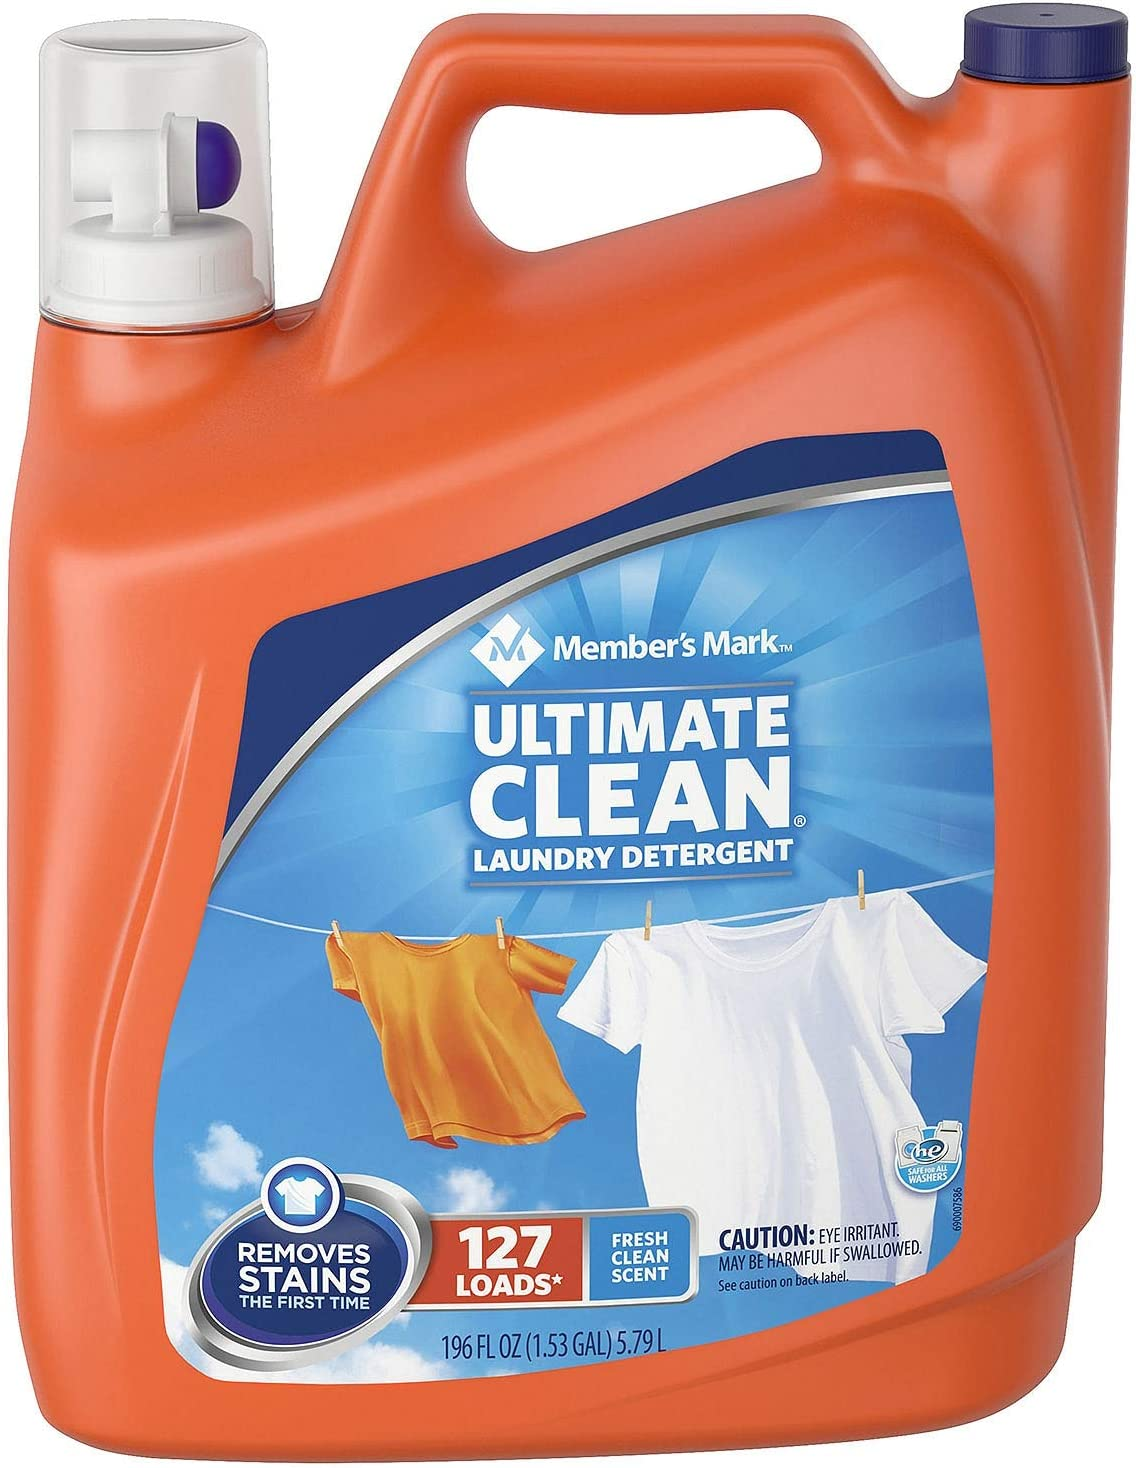 Member's Mark Ultimate Clean Liquid Laundry Detergent (196 oz., 127 loads) (pack of 6)